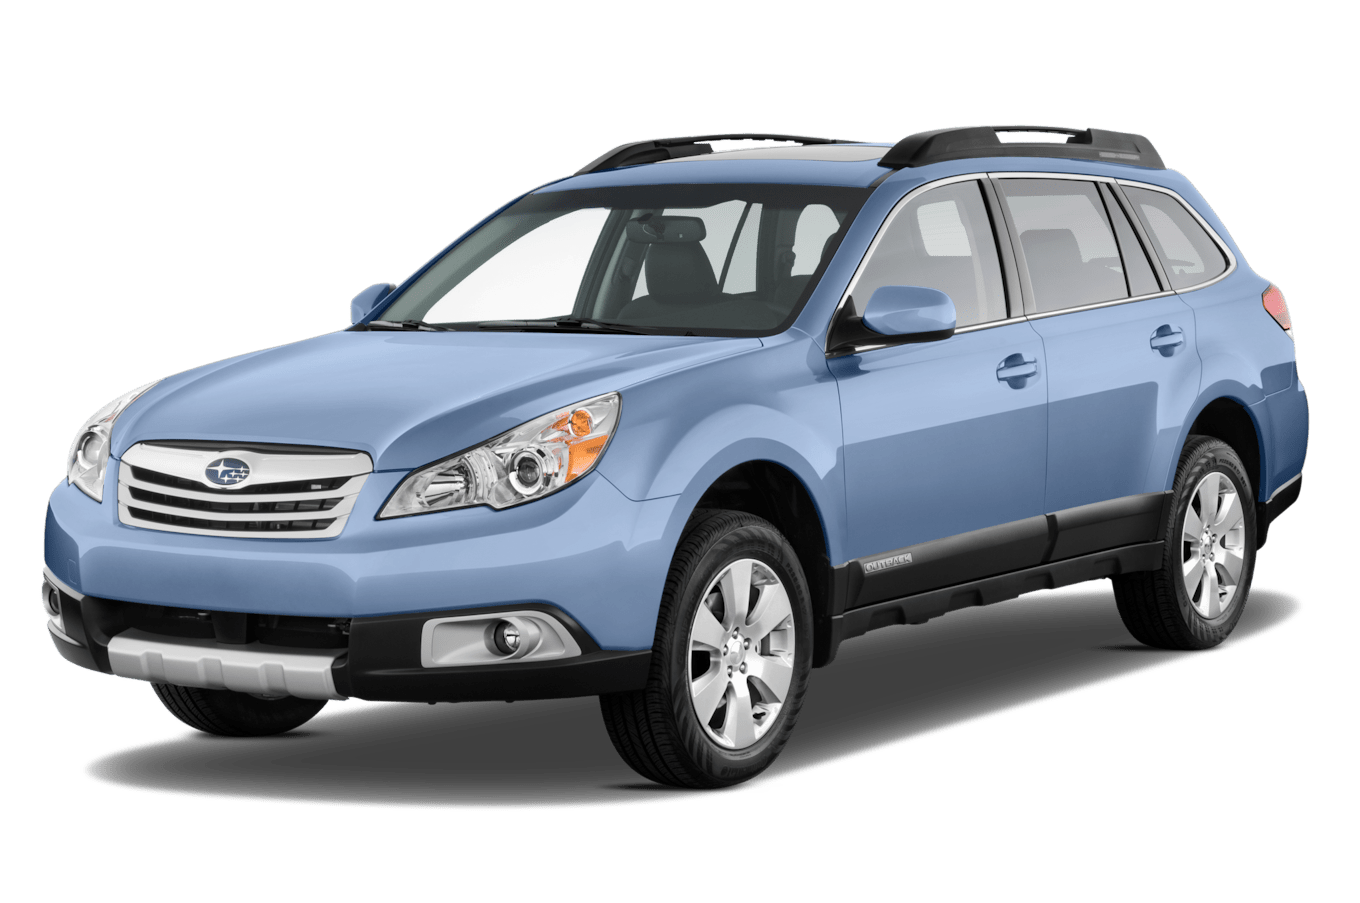 hight resolution of 2011 subaru outback reviews research outback prices specs wiring harness in addition 2016 subaru outback wagon further subaru